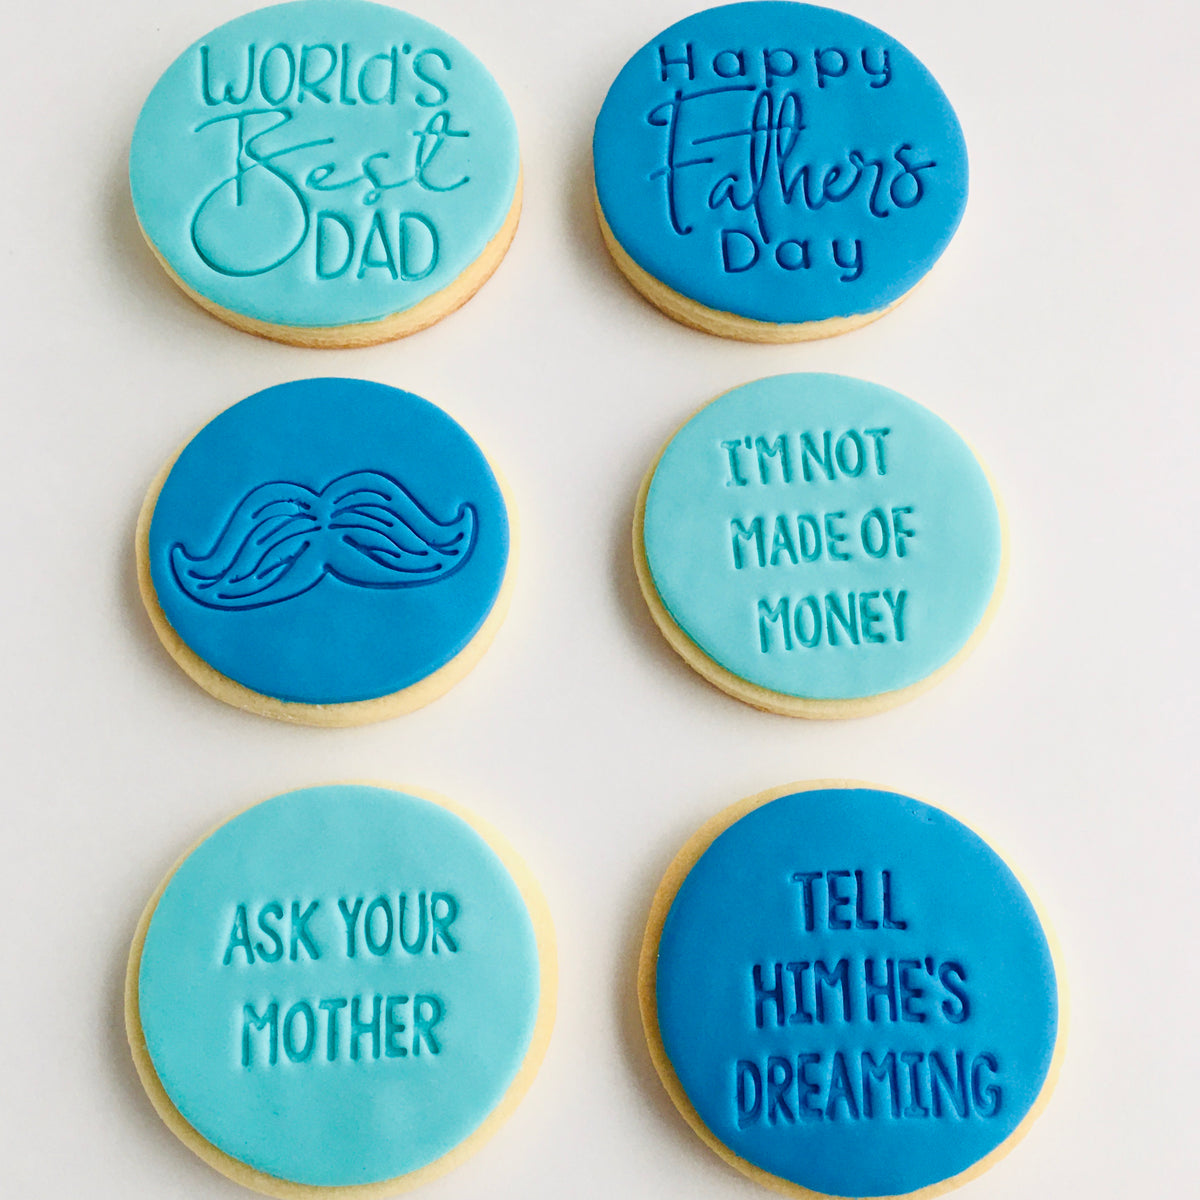 Fathers Day Cookies (Only available 4, 5, 6th of September)